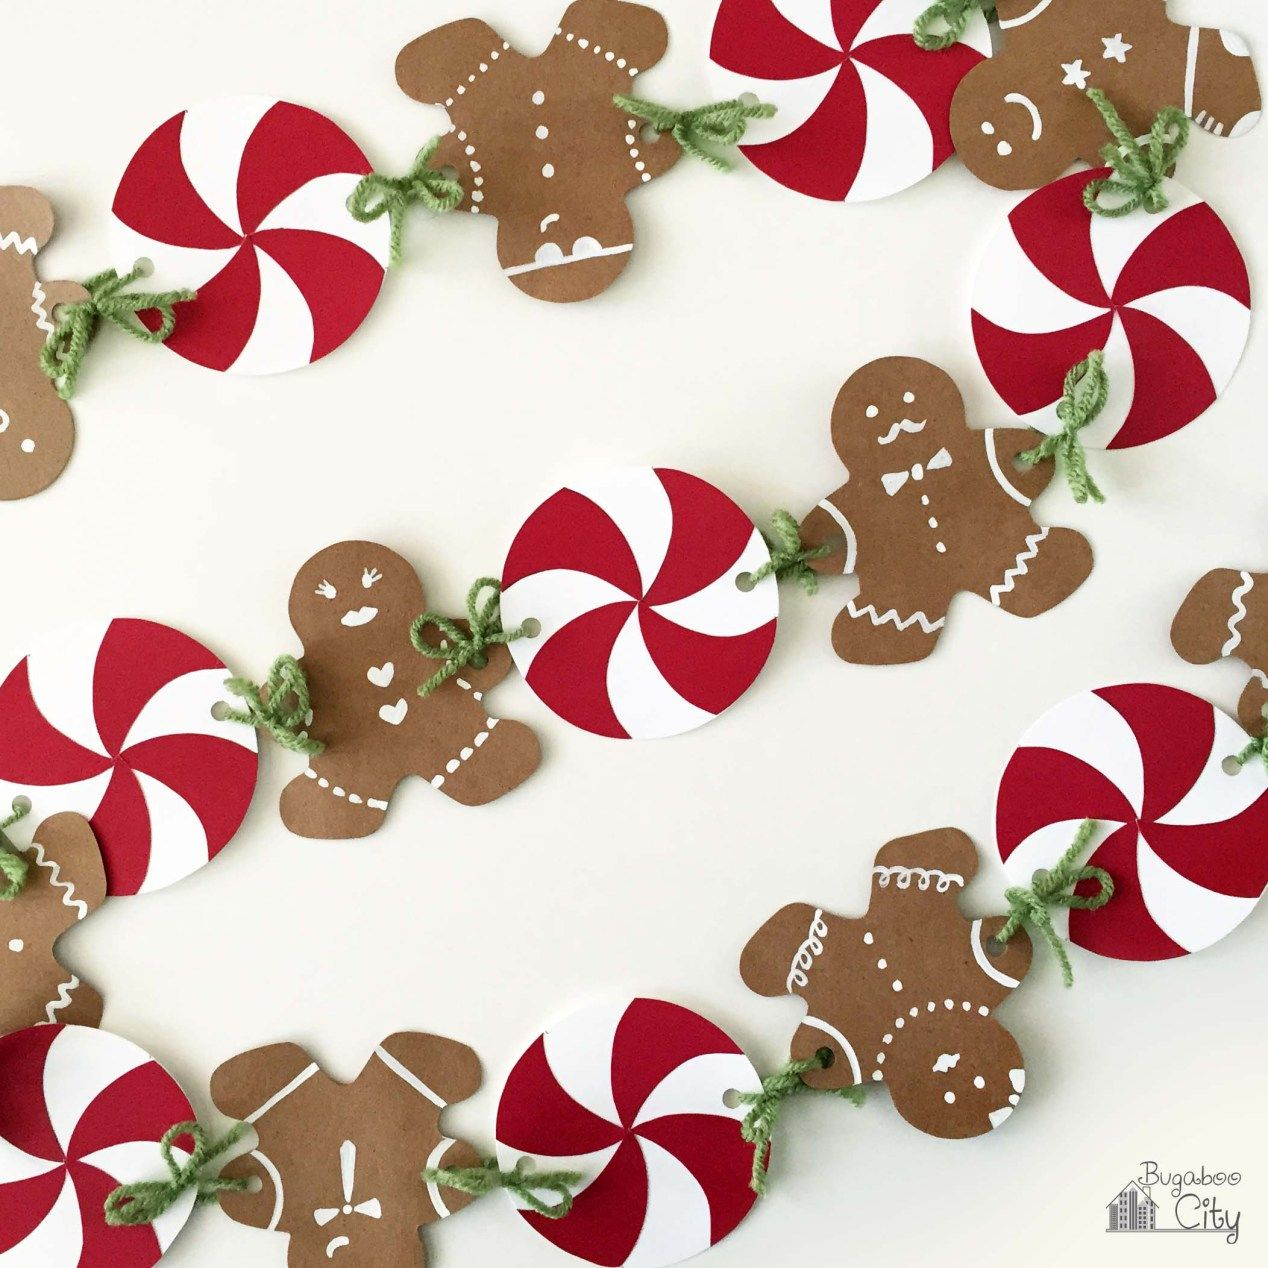 gingerbread man christmas banner gingerbread christmas tree gingerbread crafts gingerbread decorations gingerbread men